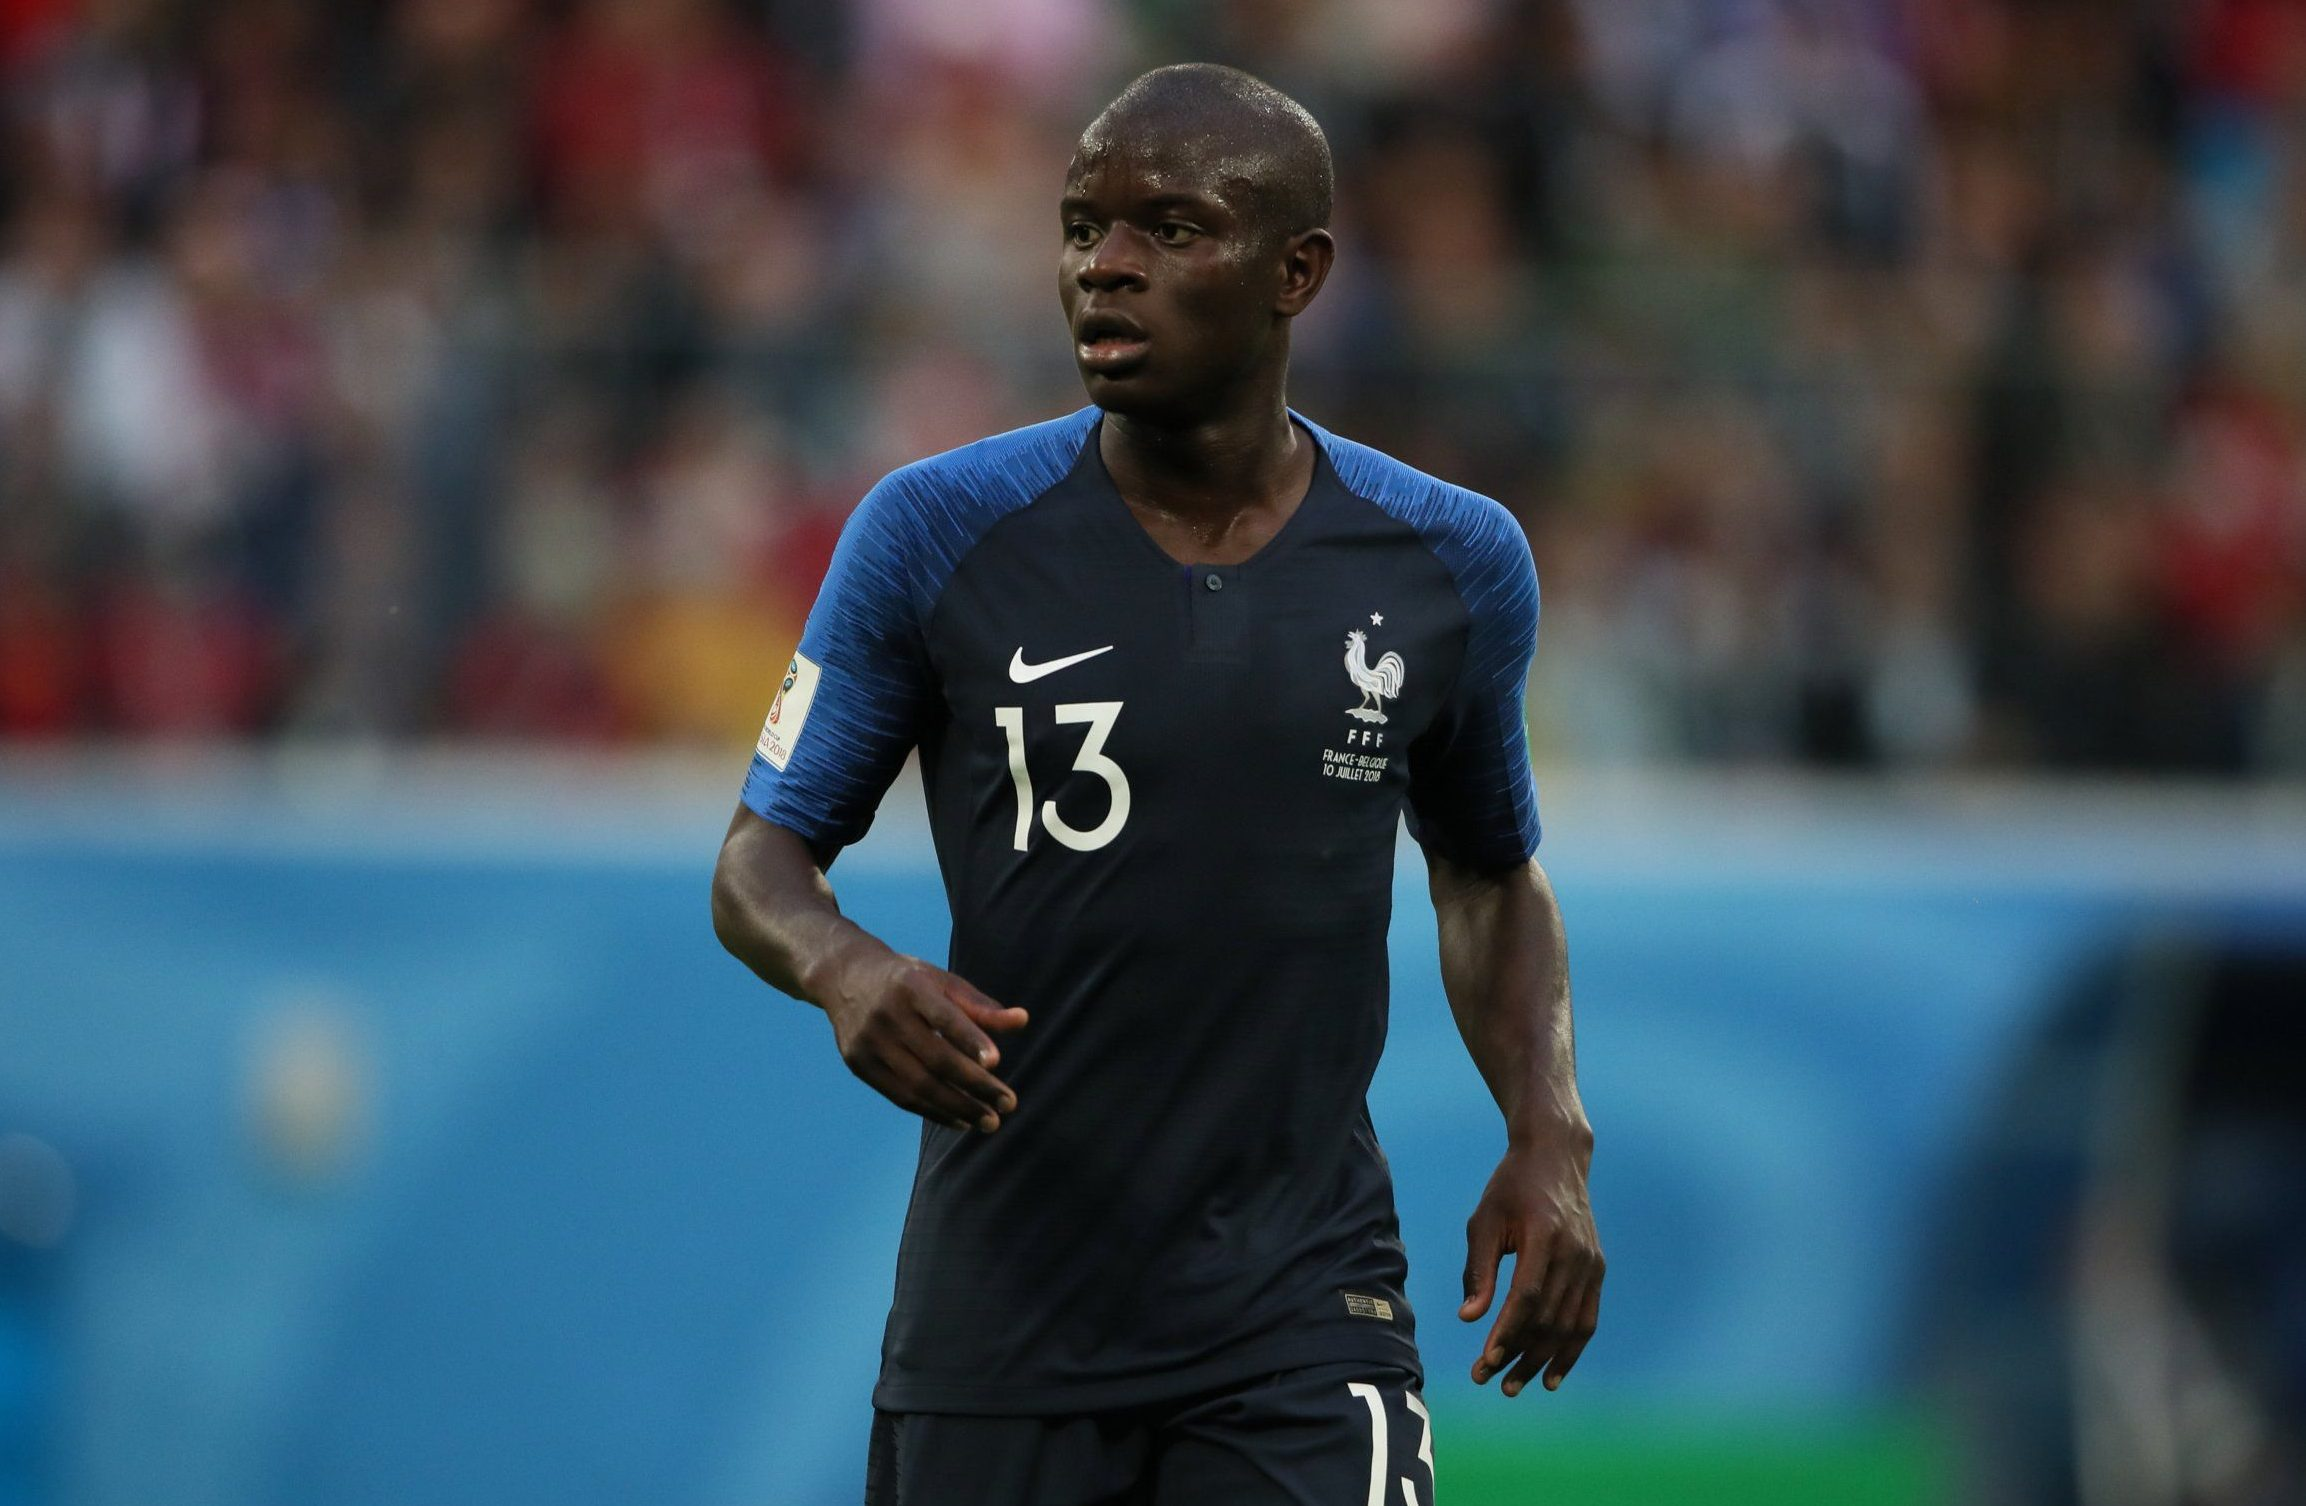 Arsene Wenger hails N'Golo Kante after France beat Belgium to reach World Cup final